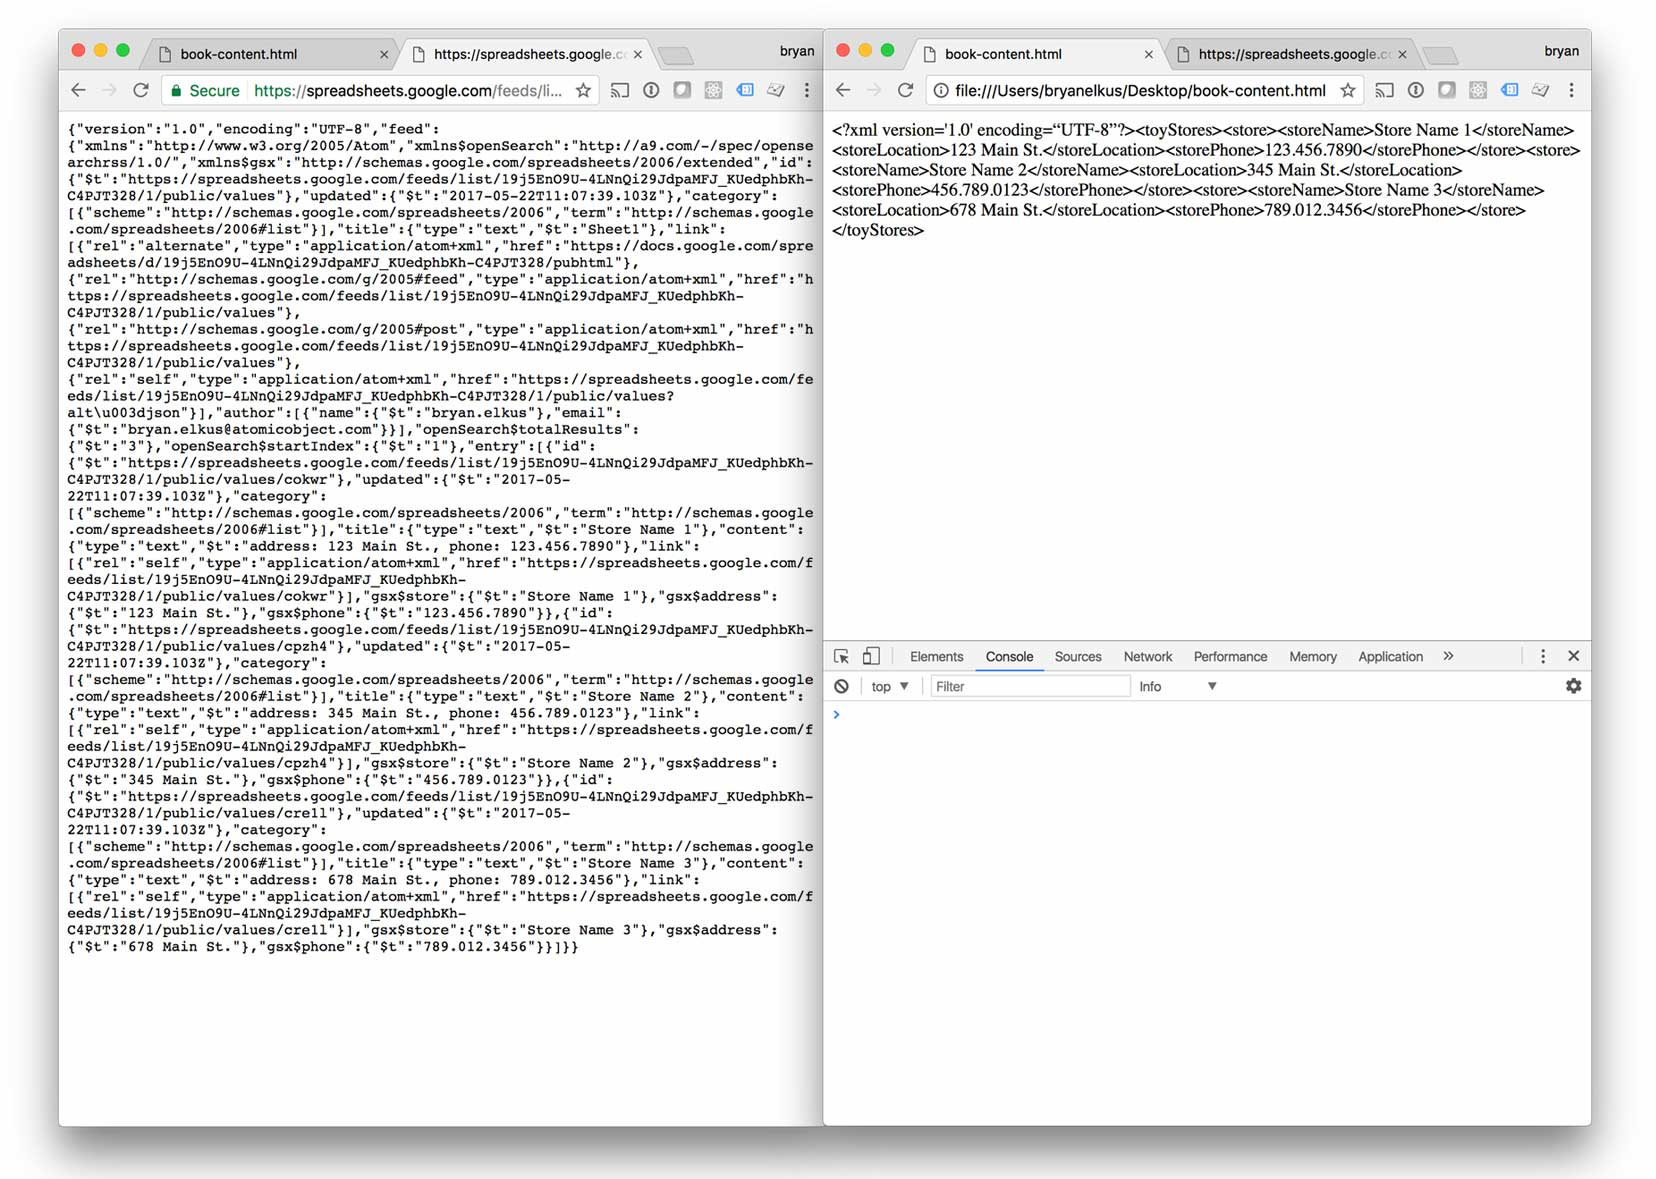 Json To Spreadsheet Converter With Regard To Json To Xml With Angularjs In Preparation For Indesign Json To Spreadsheet Converter Google Spreadshee Google Spreadshee json to spreadsheet converter